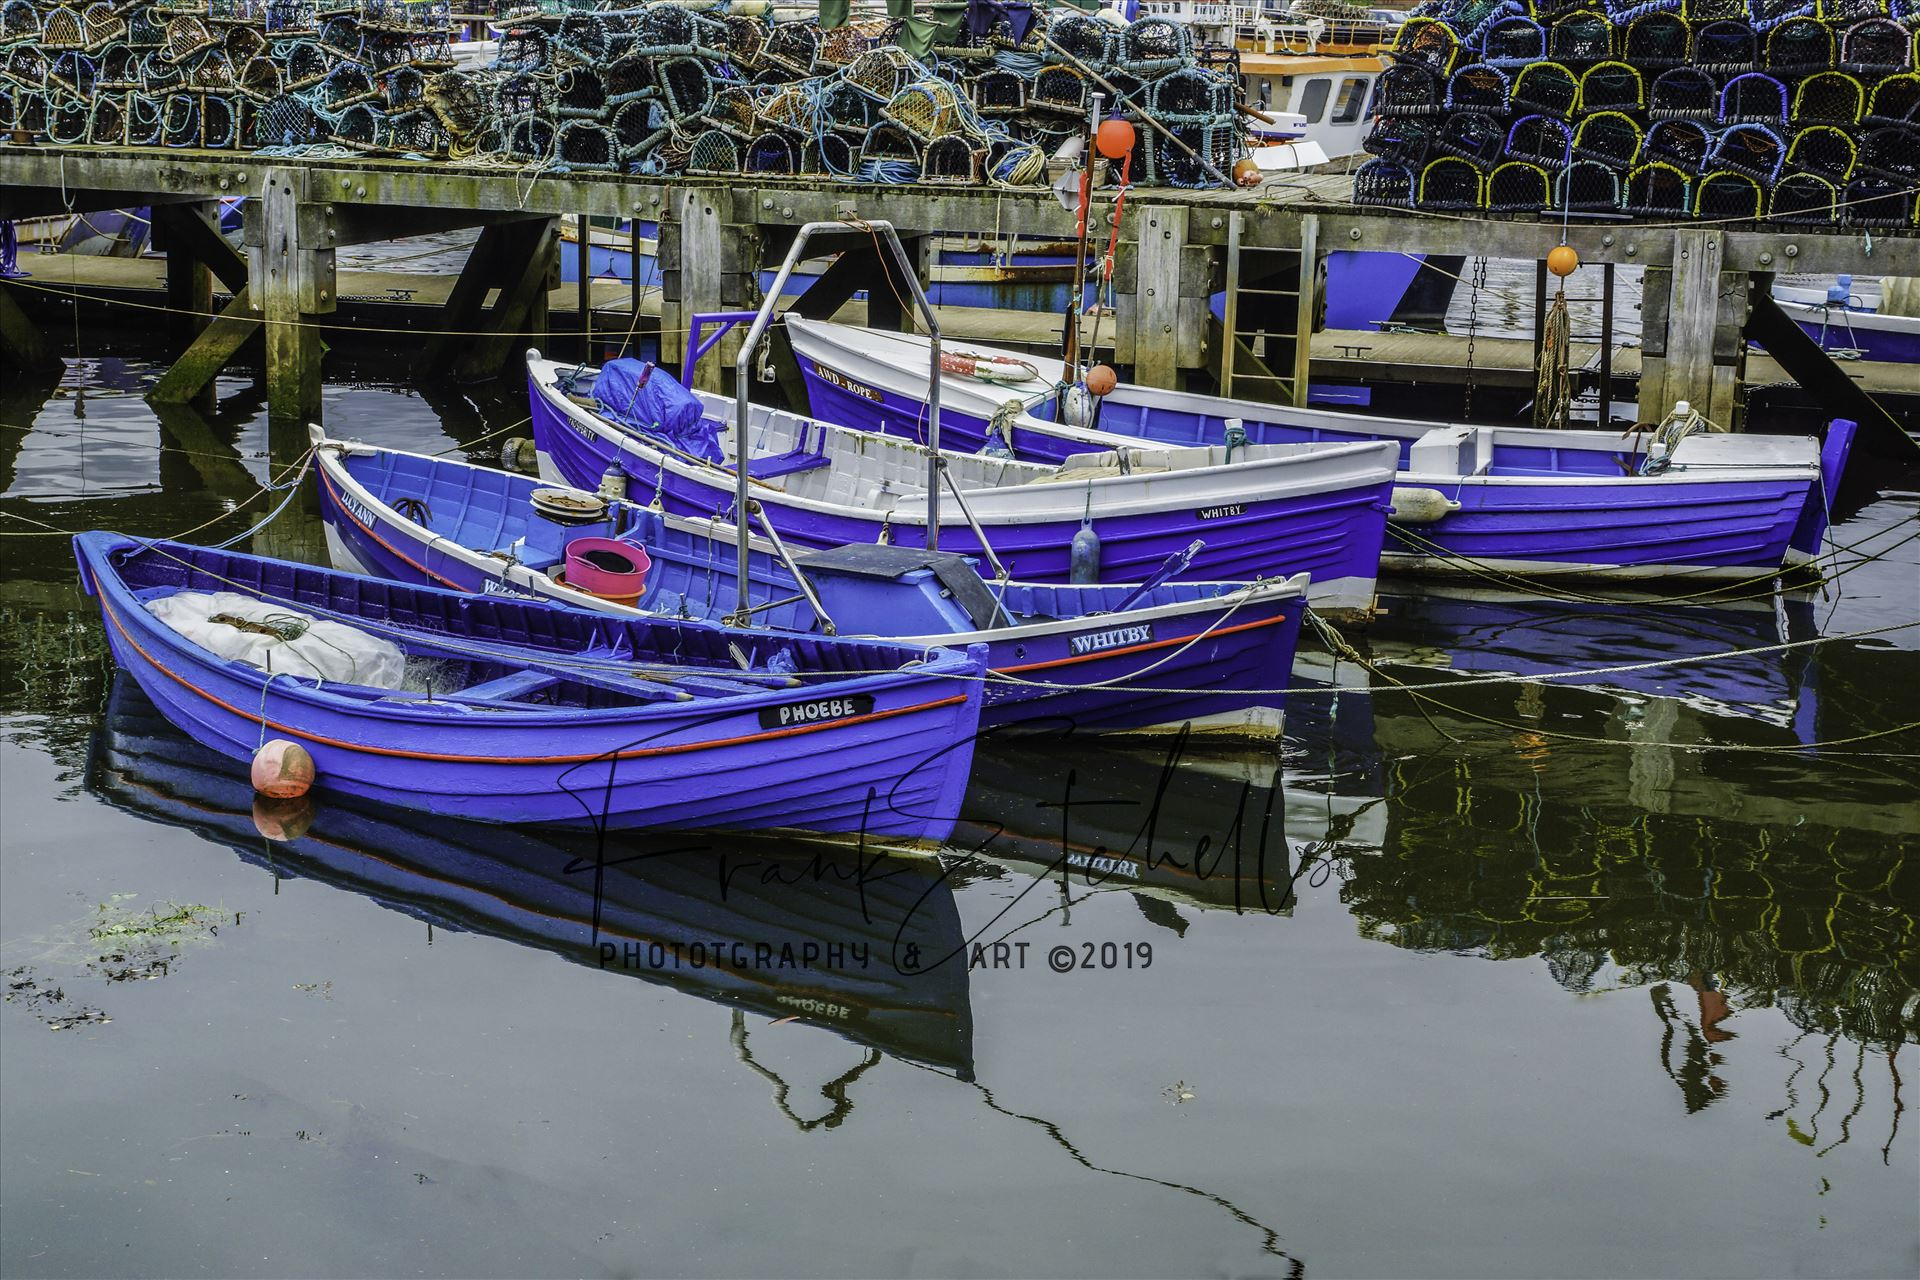 Four Tethered Boats On a trip to Whitby in Yorkshire in 2012 and a walk through the town brought us to the harbour quay side and these tethered boats. So colourful and clean, nicely reflecting in the water of the River Esk and a large stack of lobster pots behind.